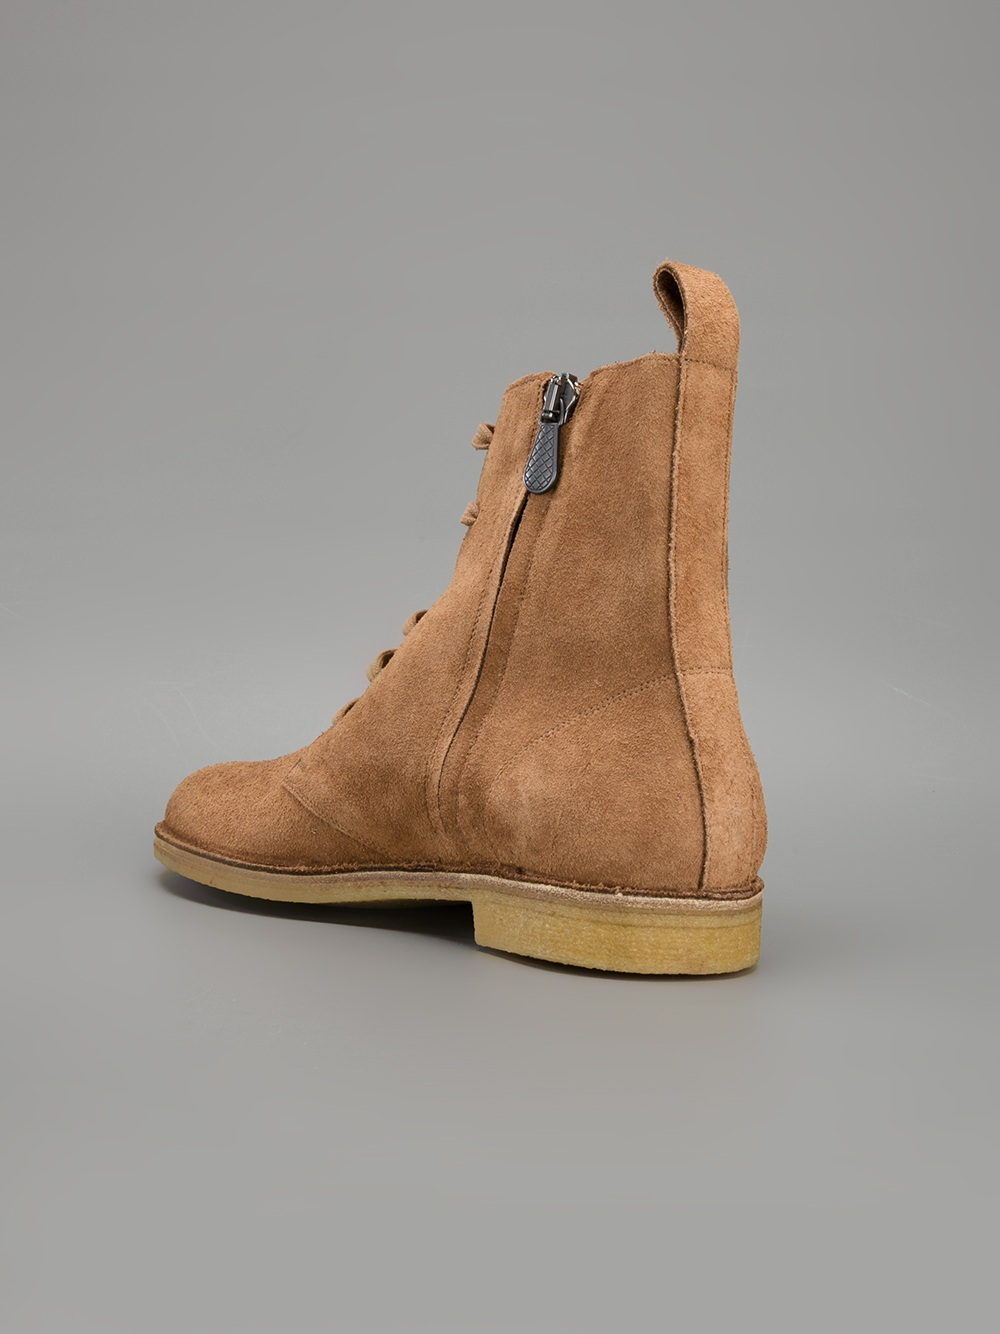 Suede Desert Boots Bottega Veneta With Paypal For Sale Clearance Online Official Site Free Shipping Authentic Free Shipping Best Store To Get OuNUu48aK